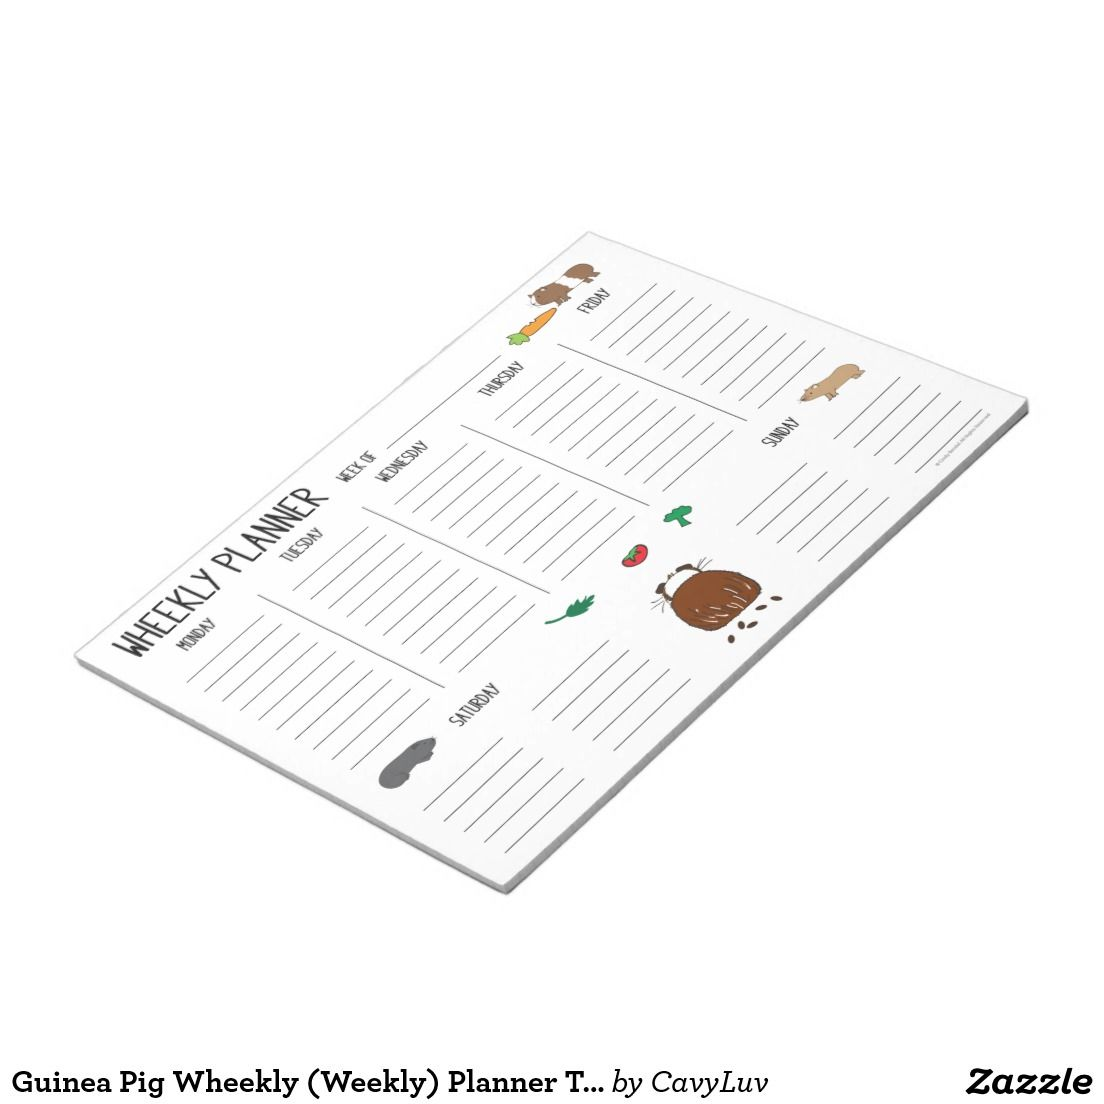 guinea pig wheekly weekly planner to do list notepad [ 1104 x 1104 Pixel ]